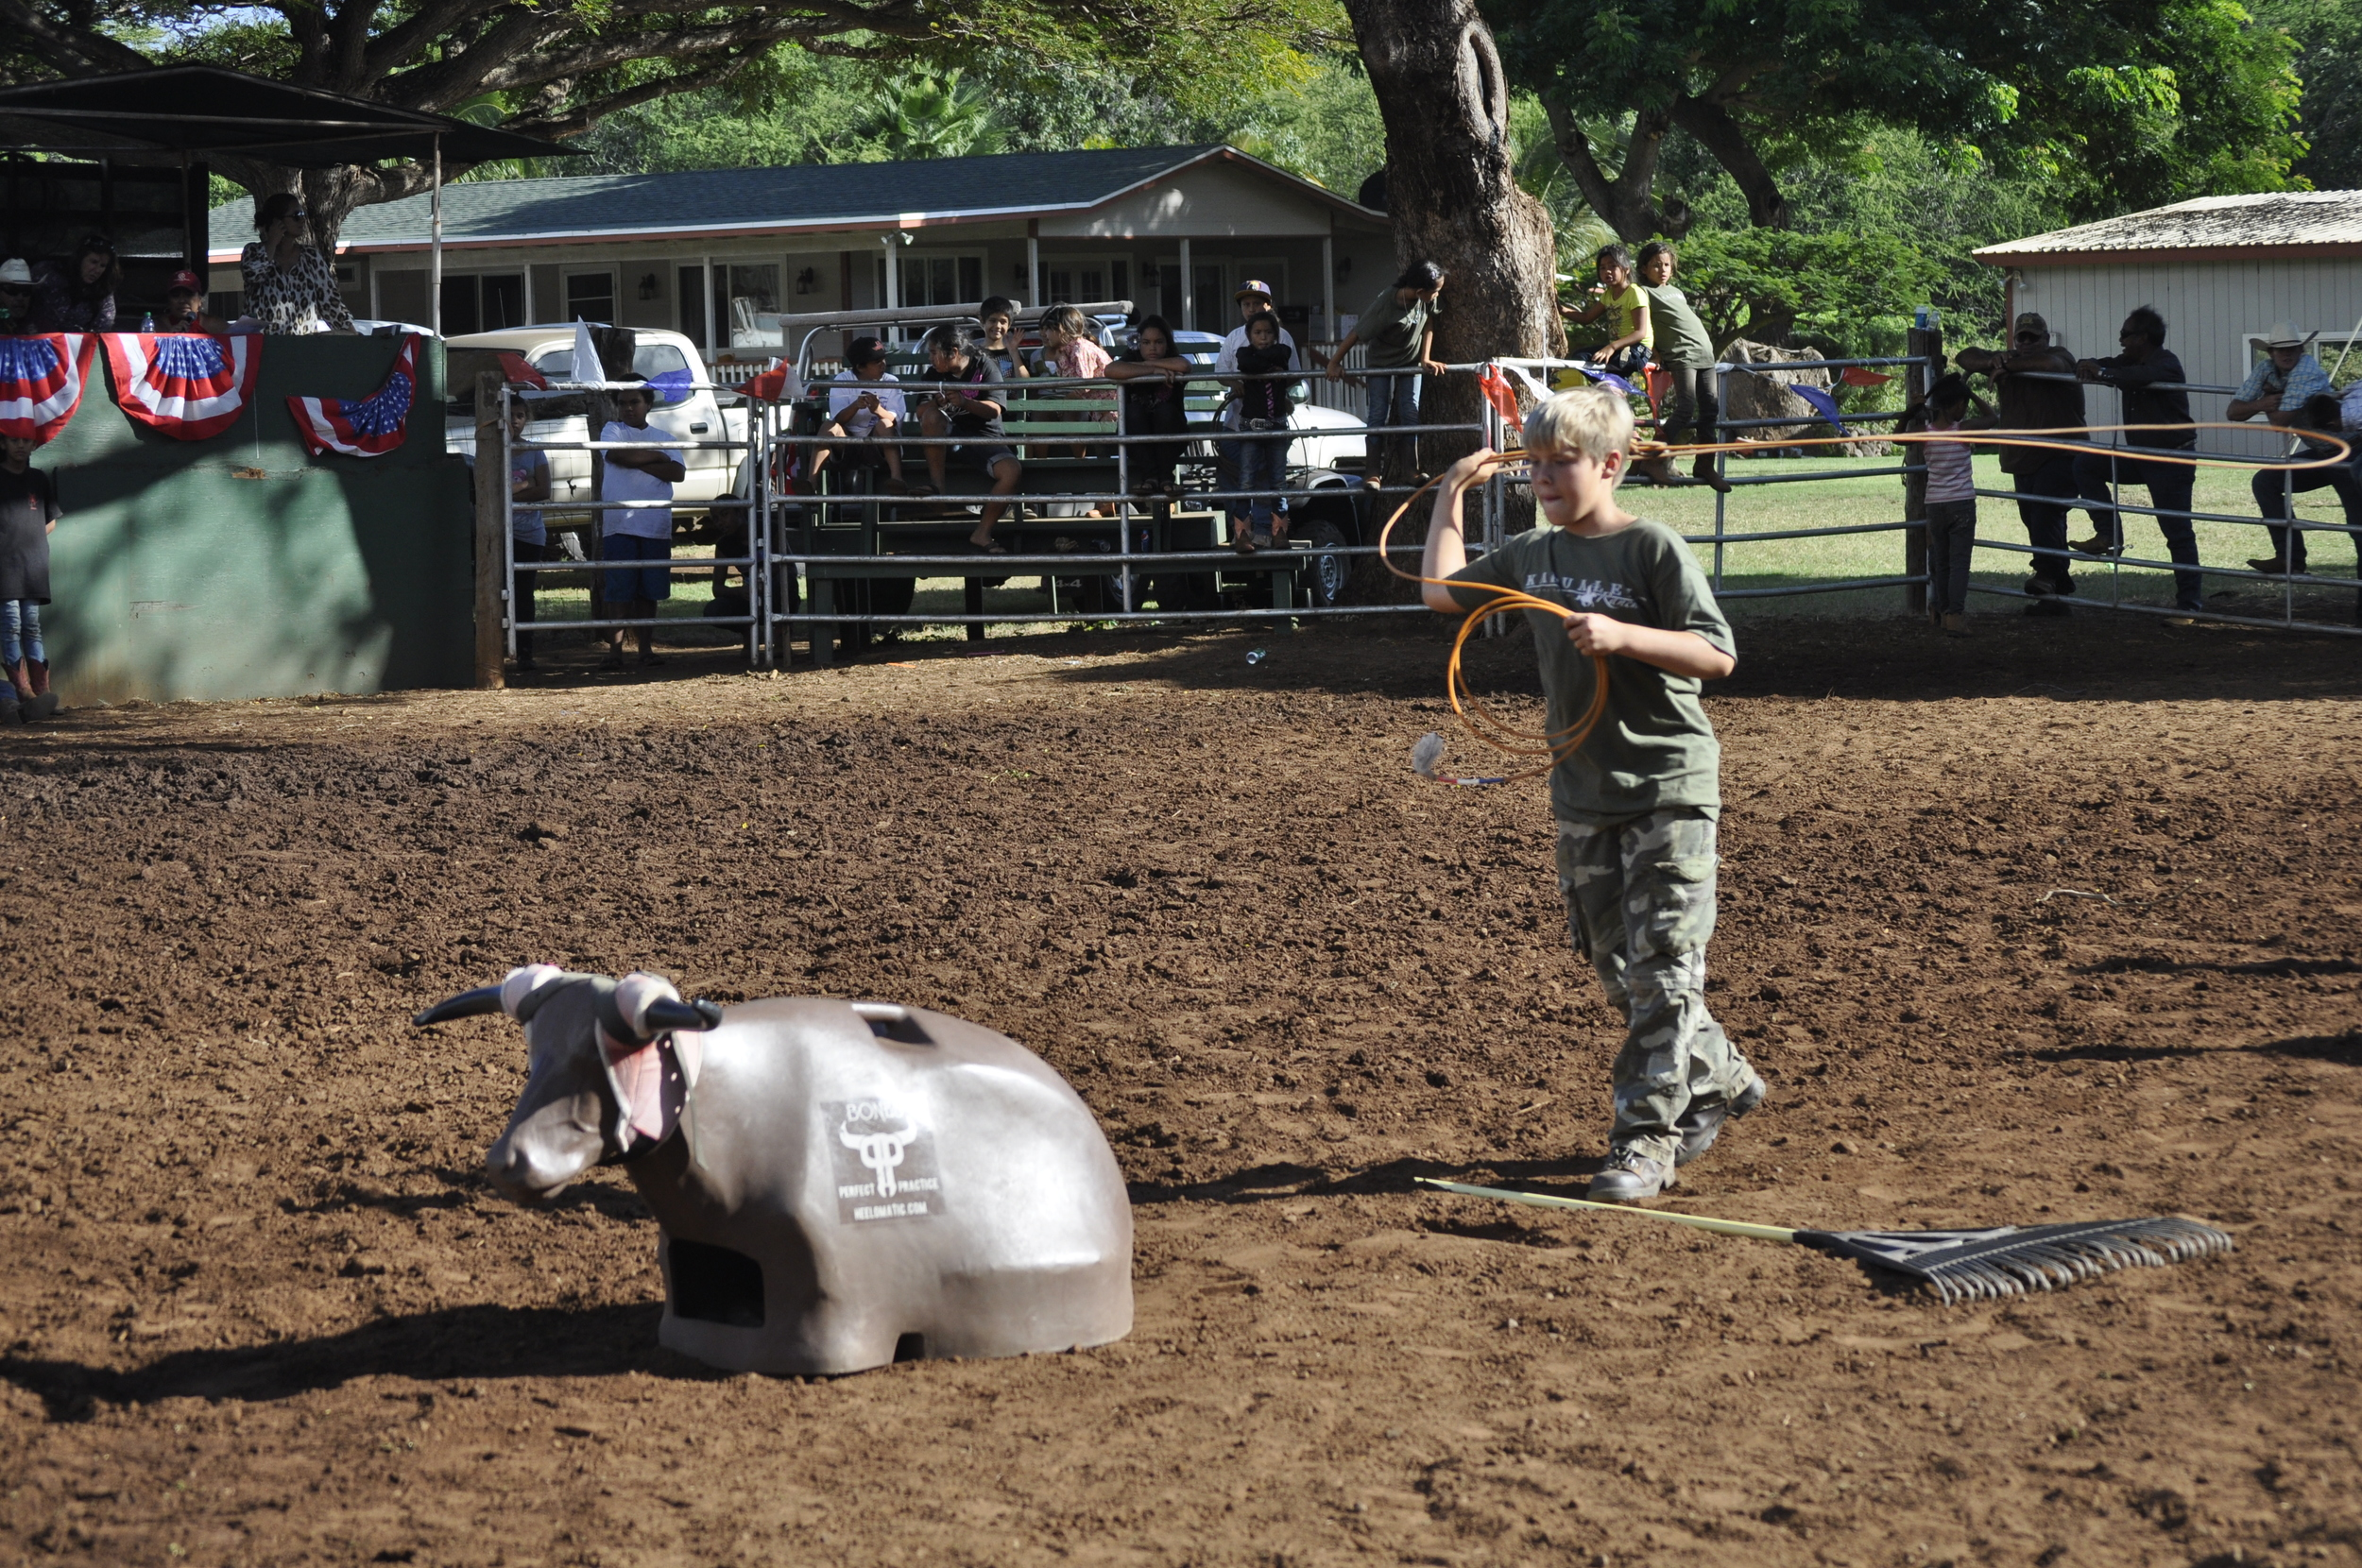 All ropers have to master the dummy before chasing the real thing – it begins with the kids.